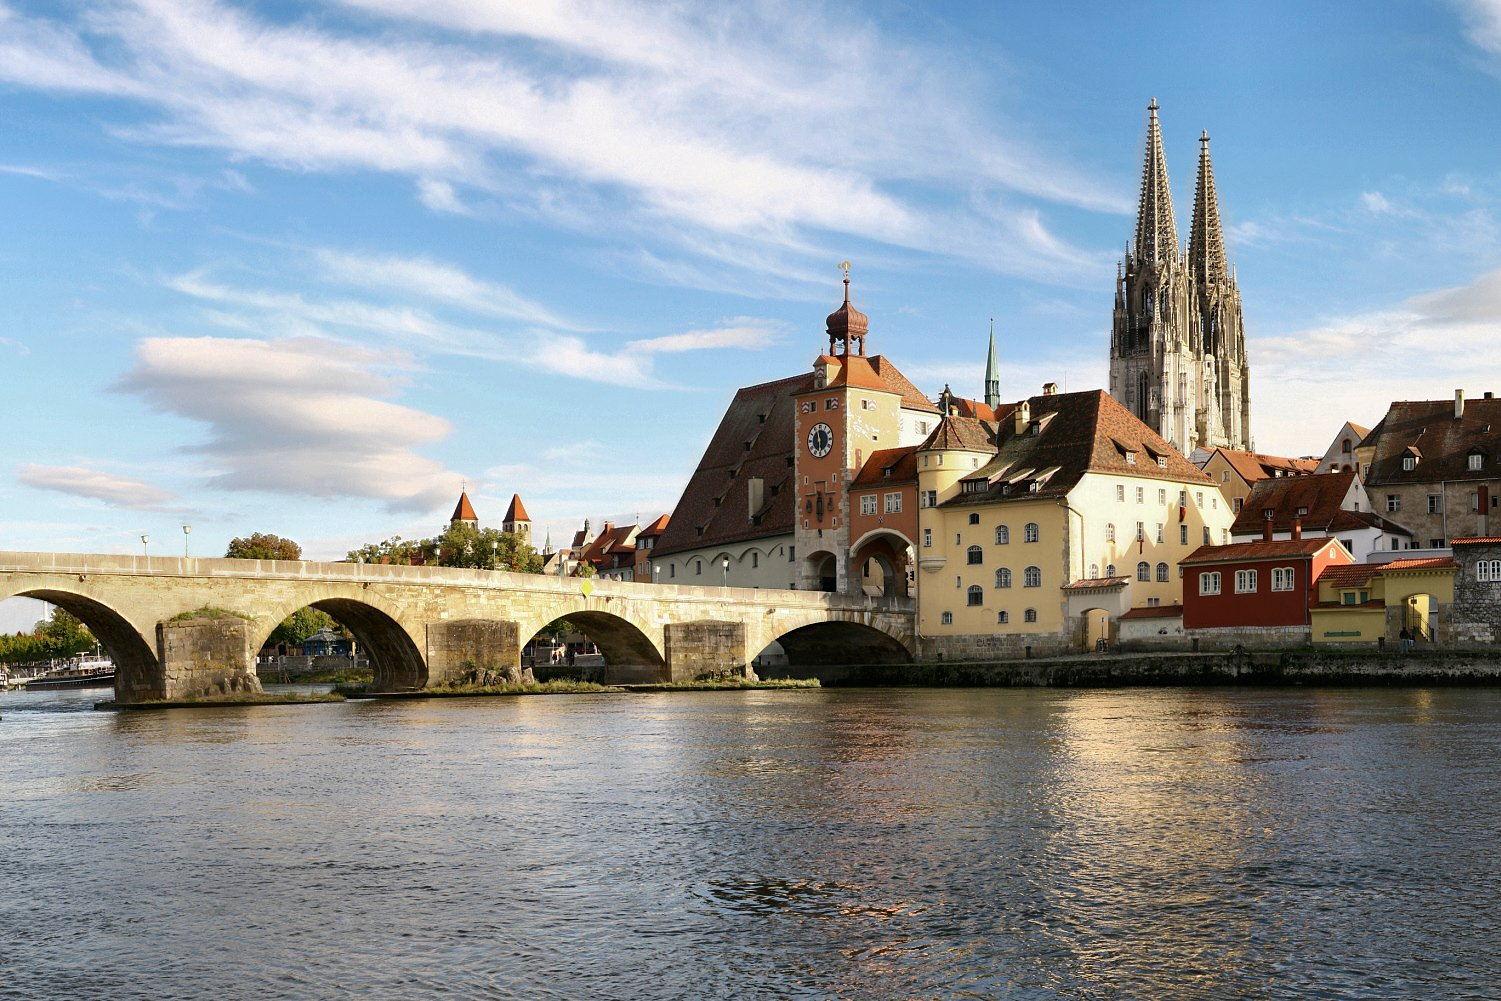 xregensburg 08 2006 2.jpg.pagespeed.ic.ITQHpYZx6o